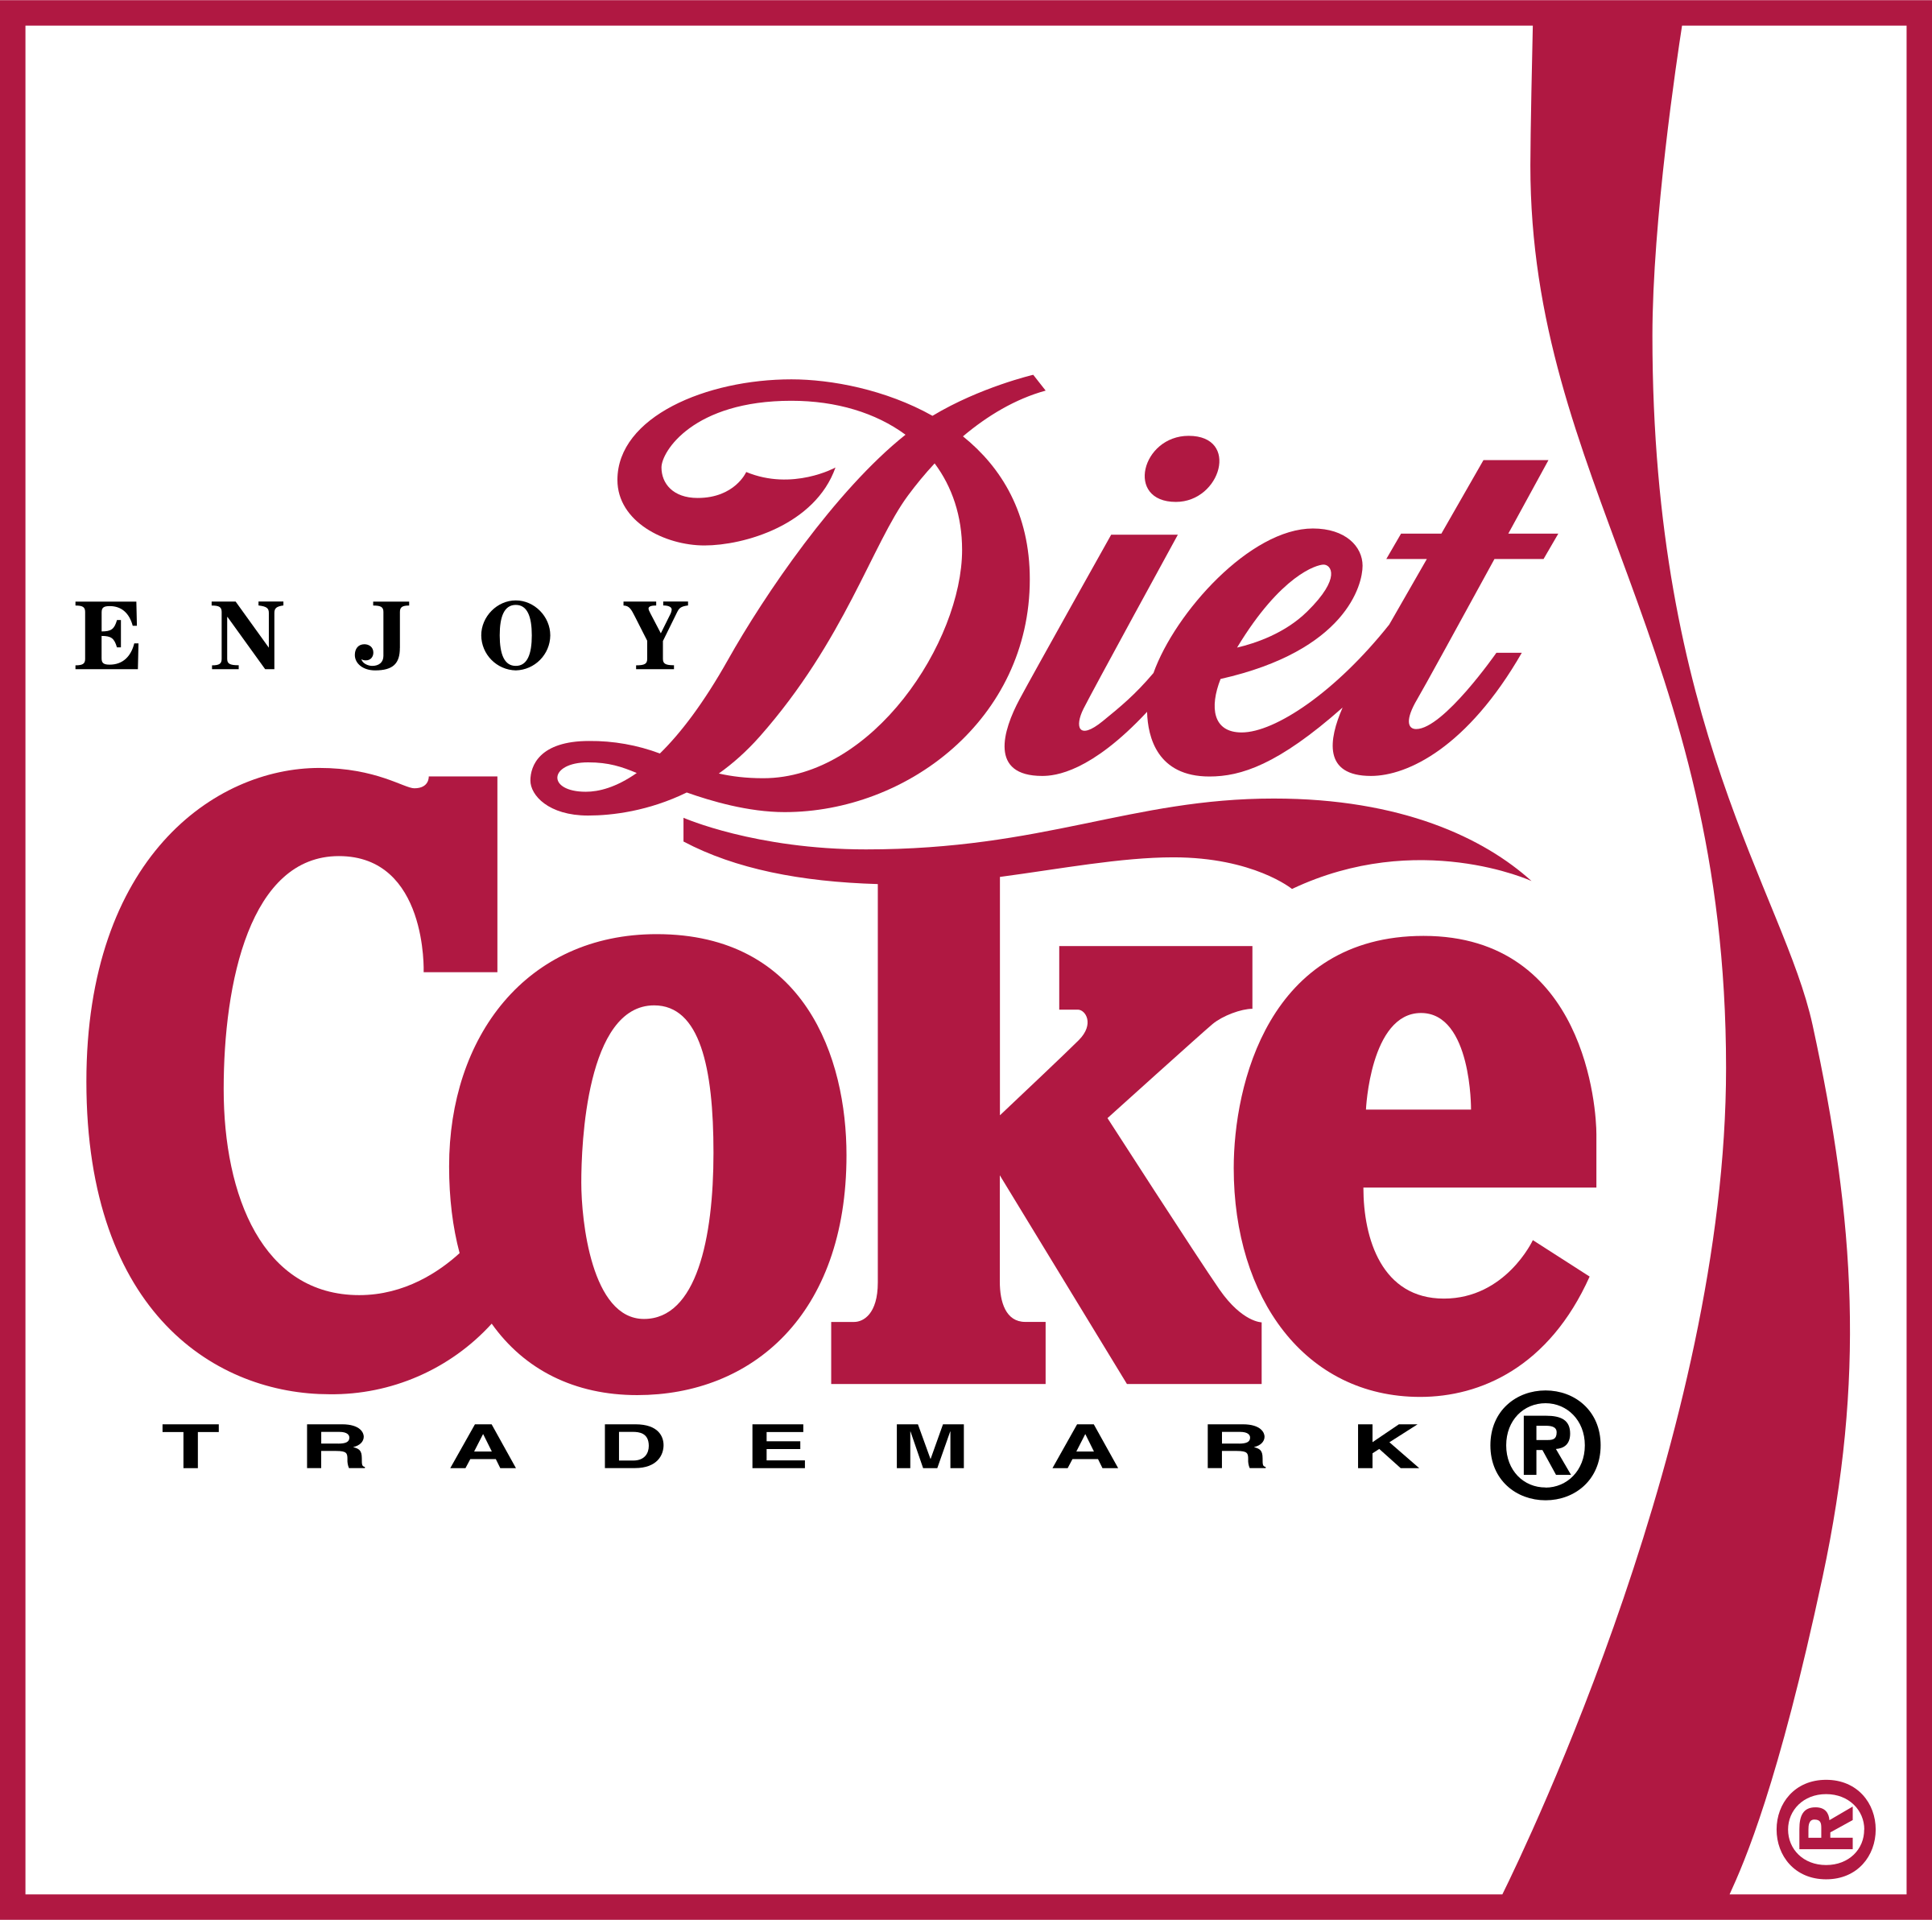 coca cola diet 4 logo png transparent amp svg vector